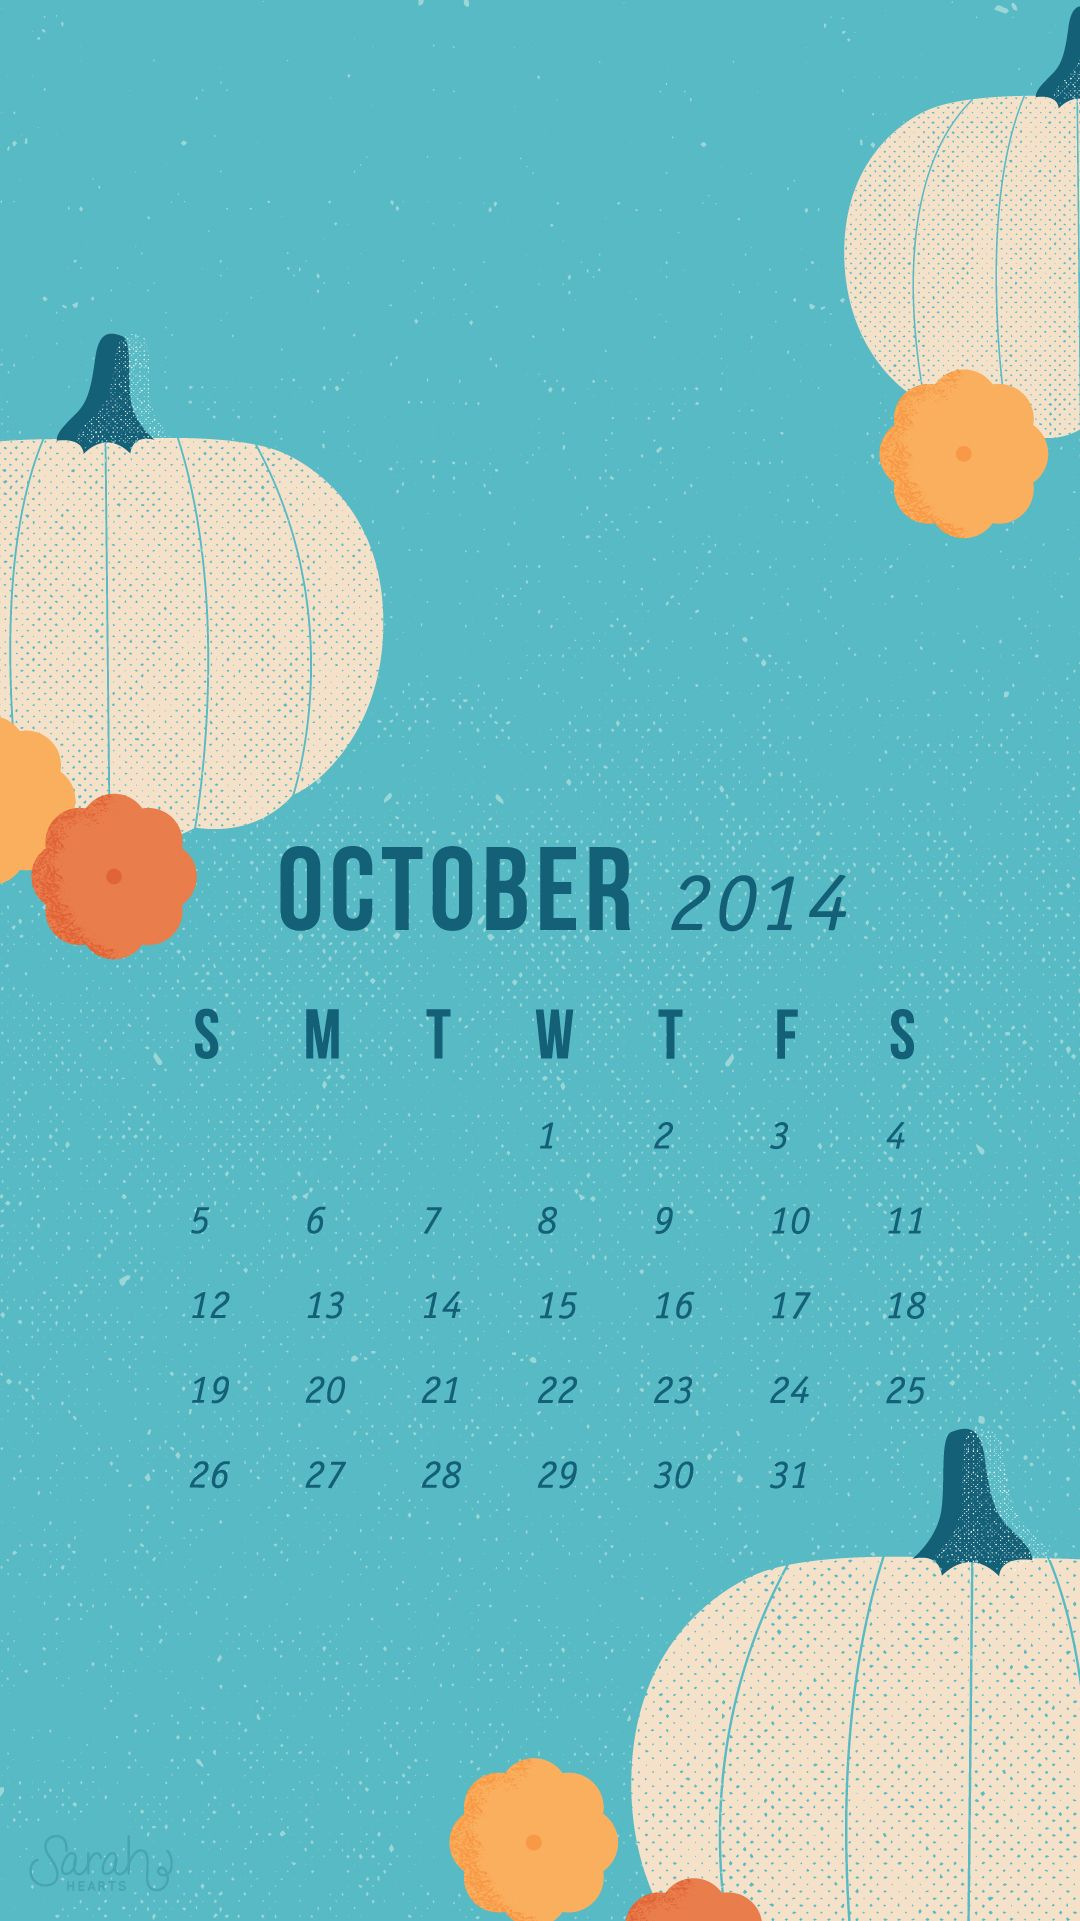 Google Calendar Background Wallpaper : Pin by nicole treesh on iphone desktop wallpapers